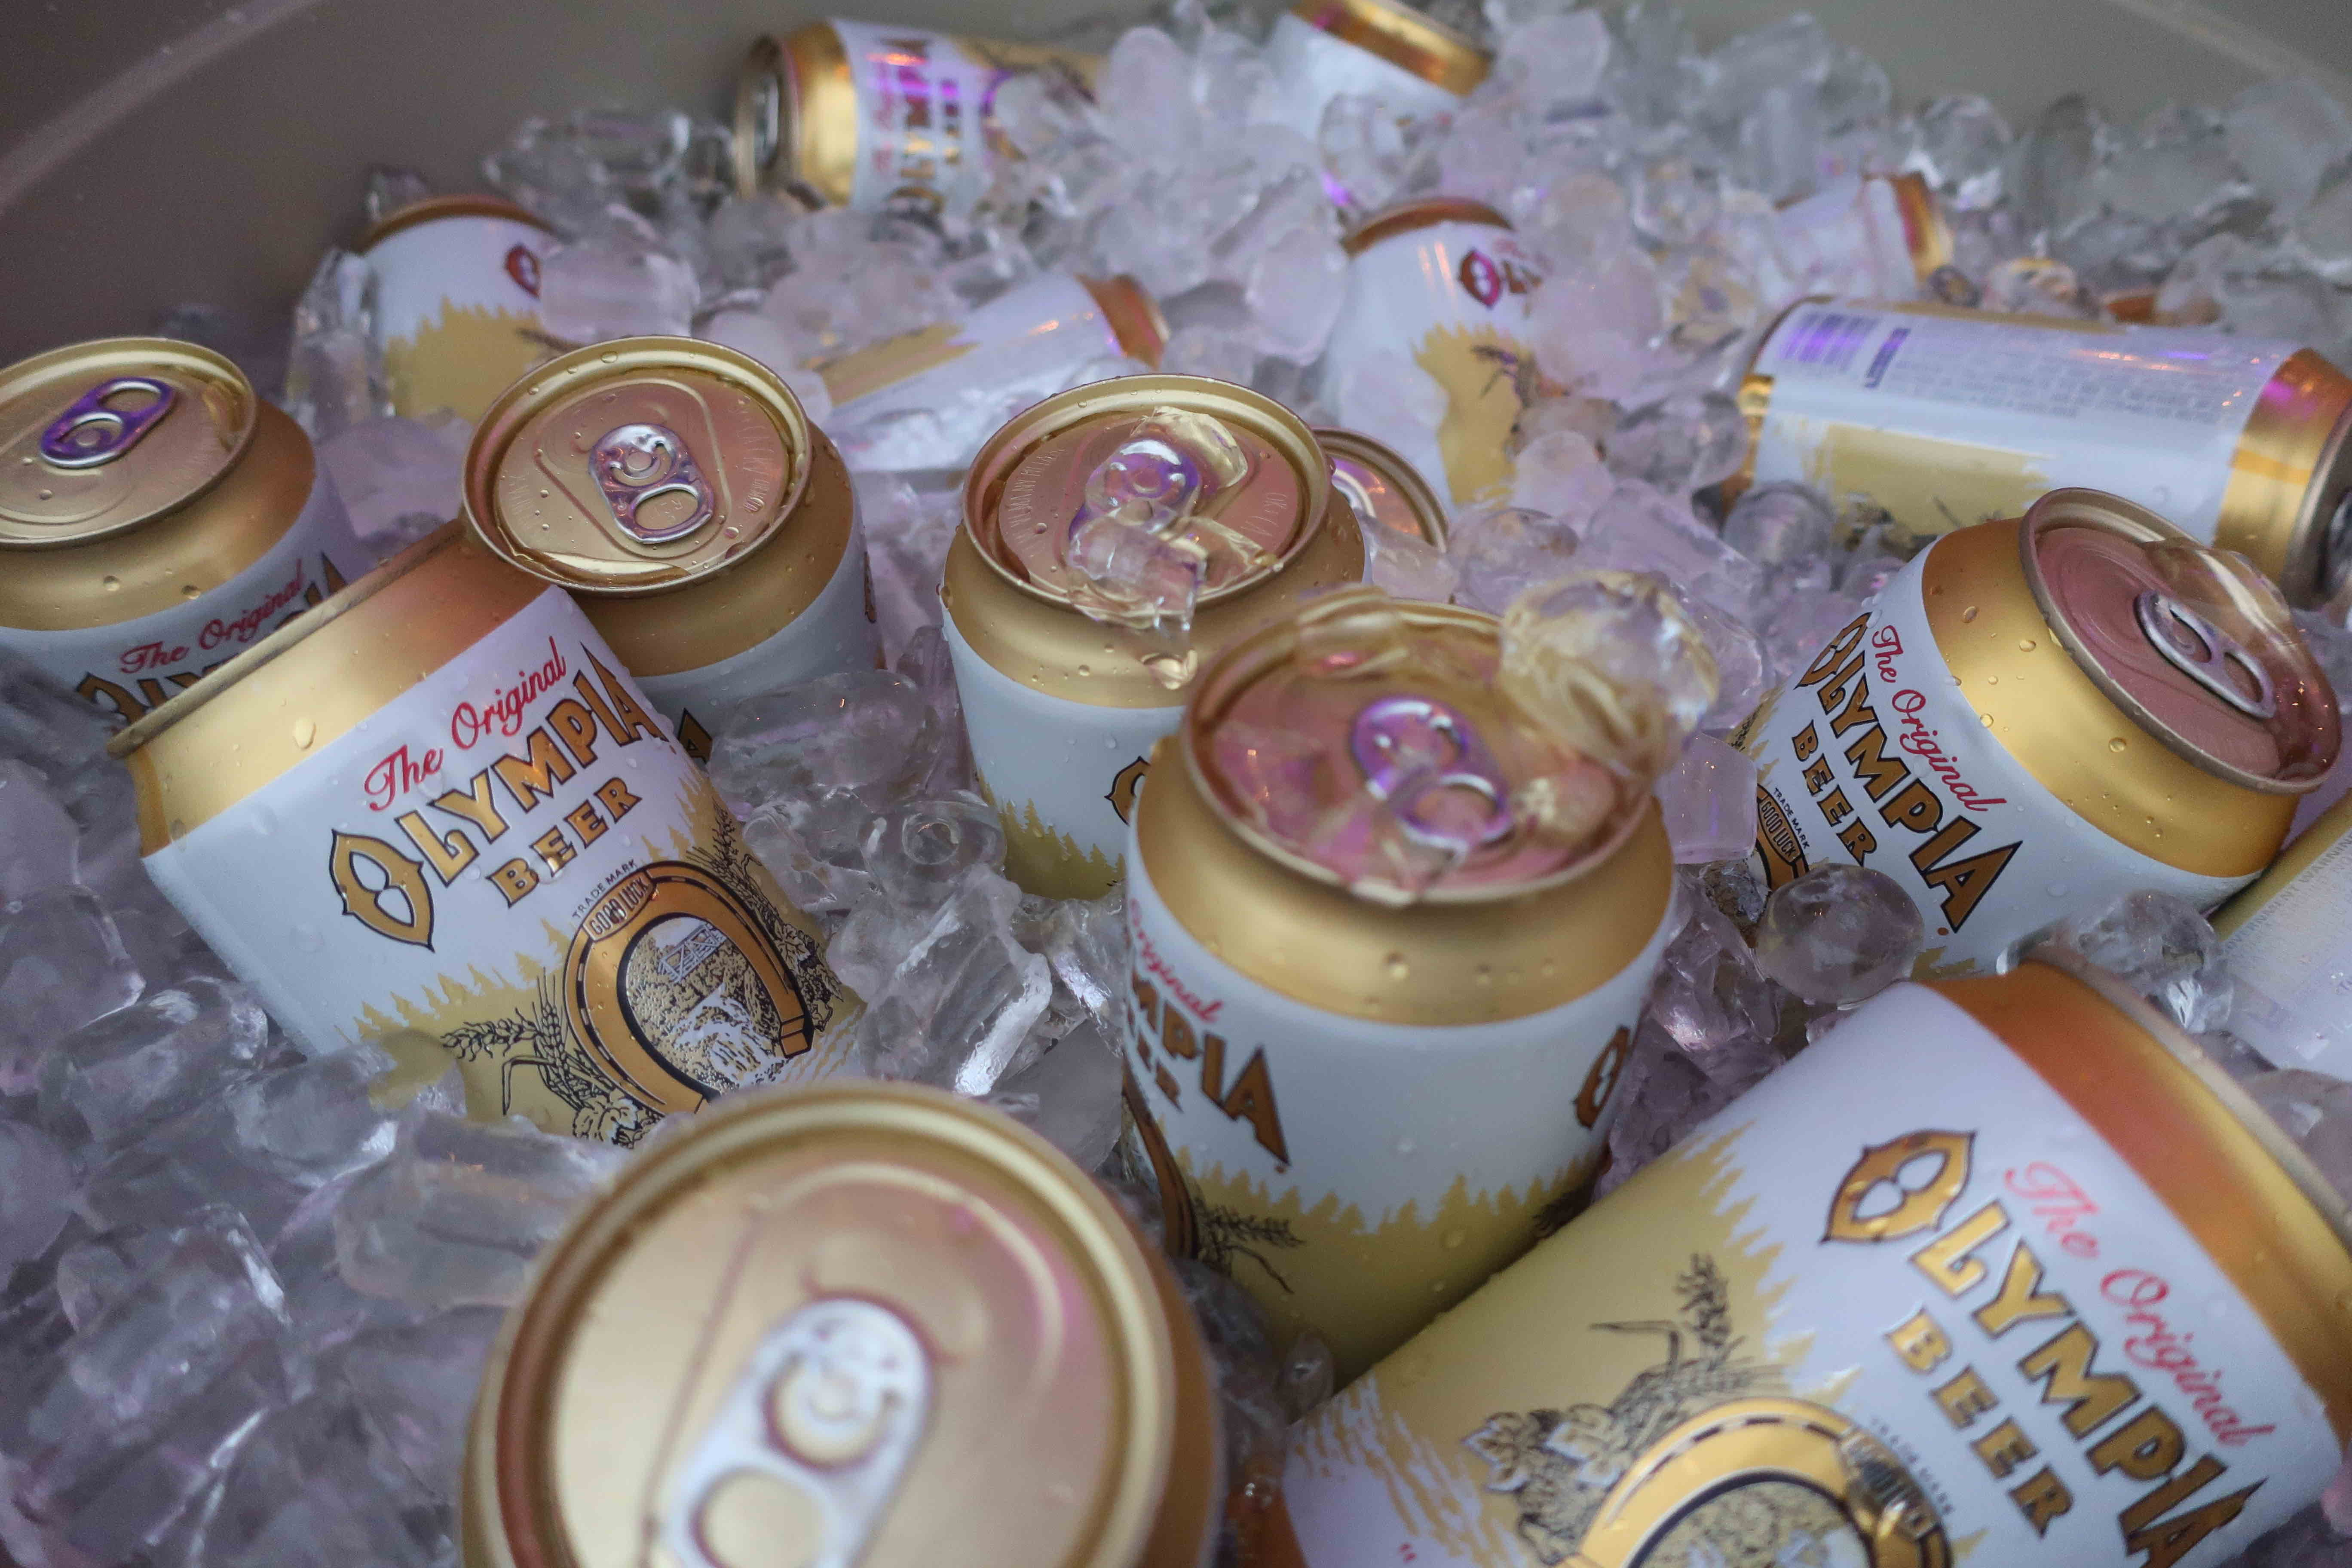 Cans of ice cold Olympia Beer will be a thing of the past as Pabst Brewing Co. discontinues production of the beer